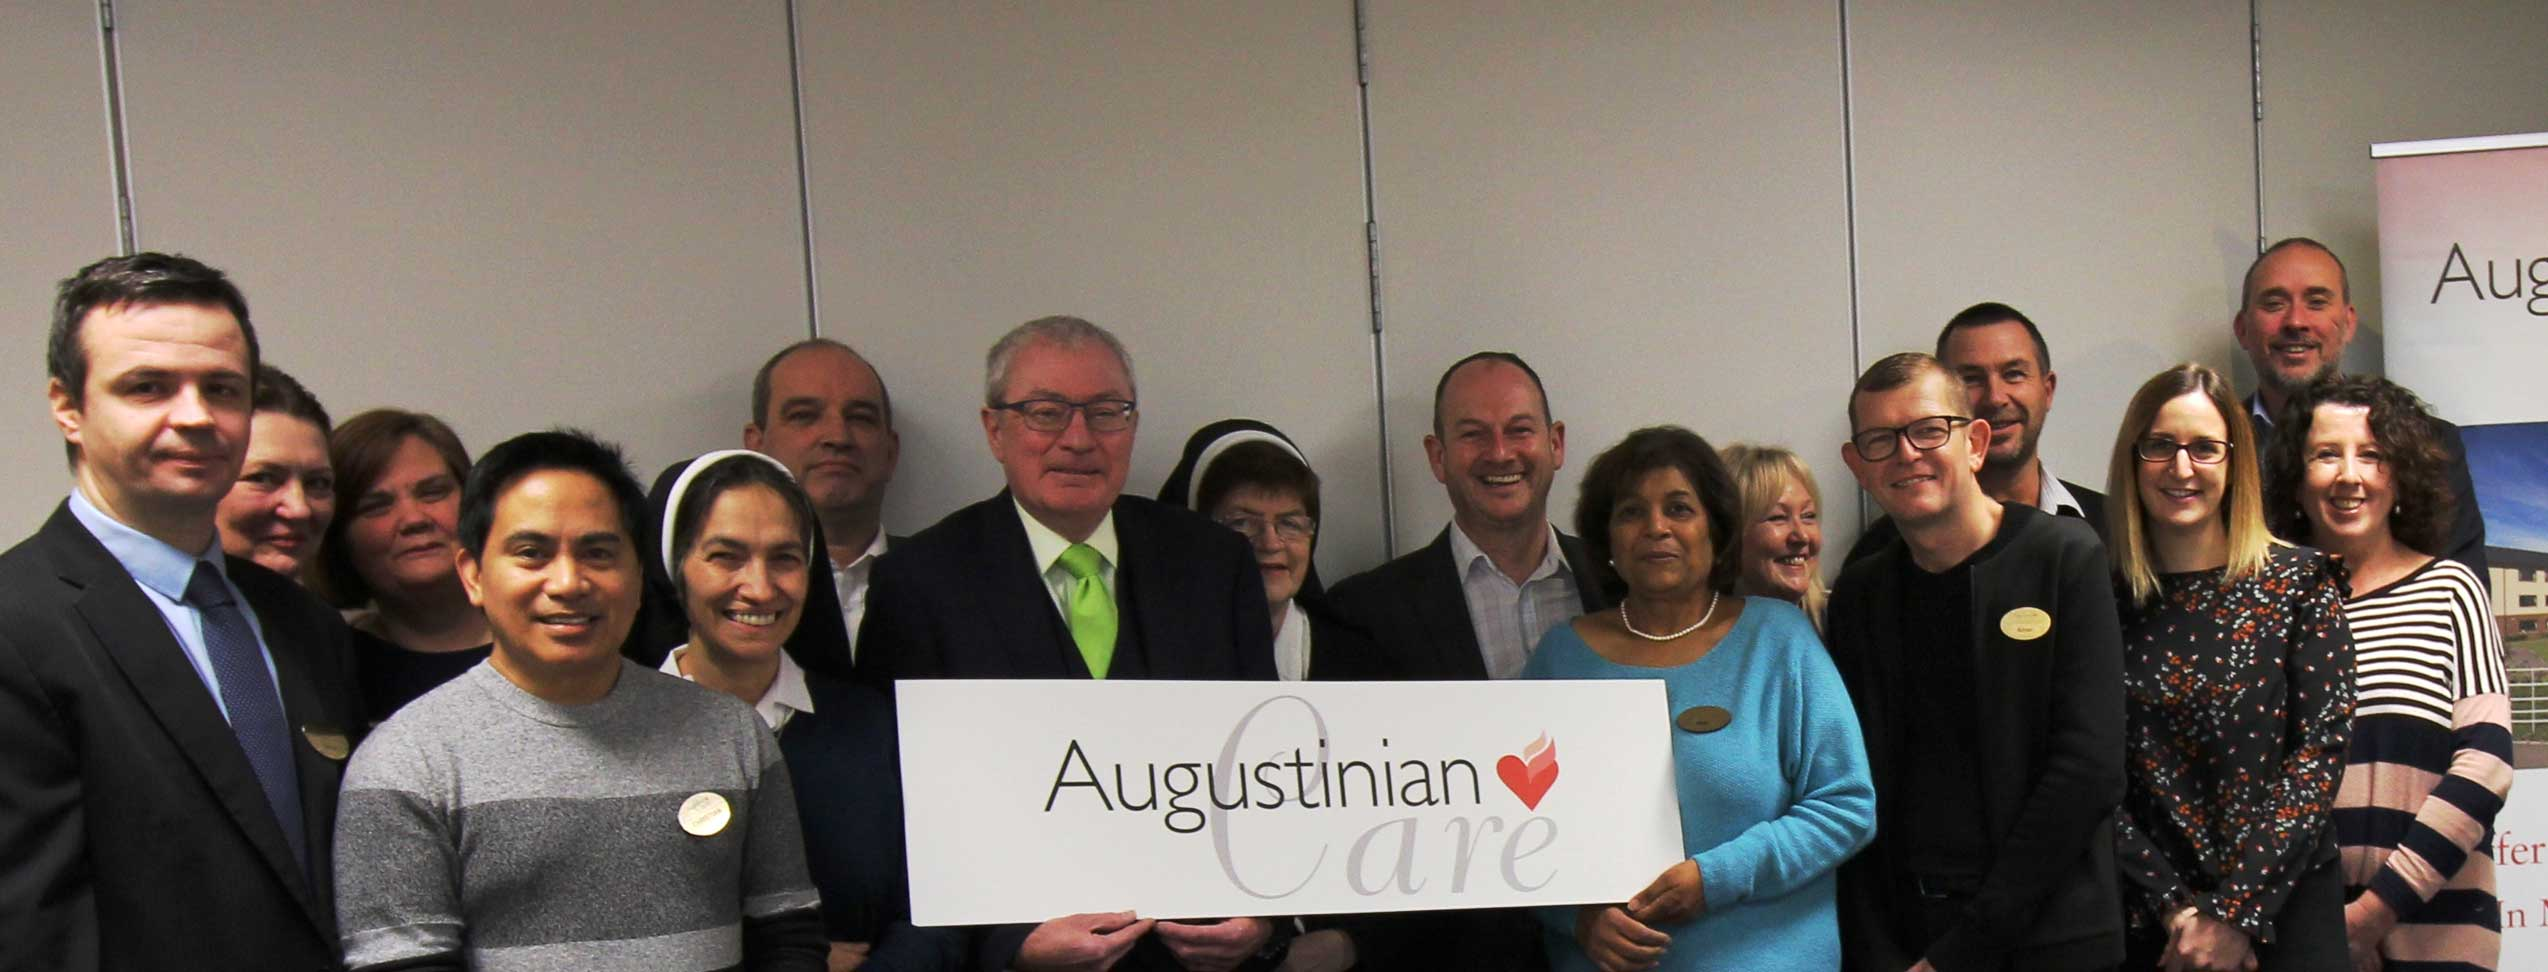 Augustinian Care - Banner 1